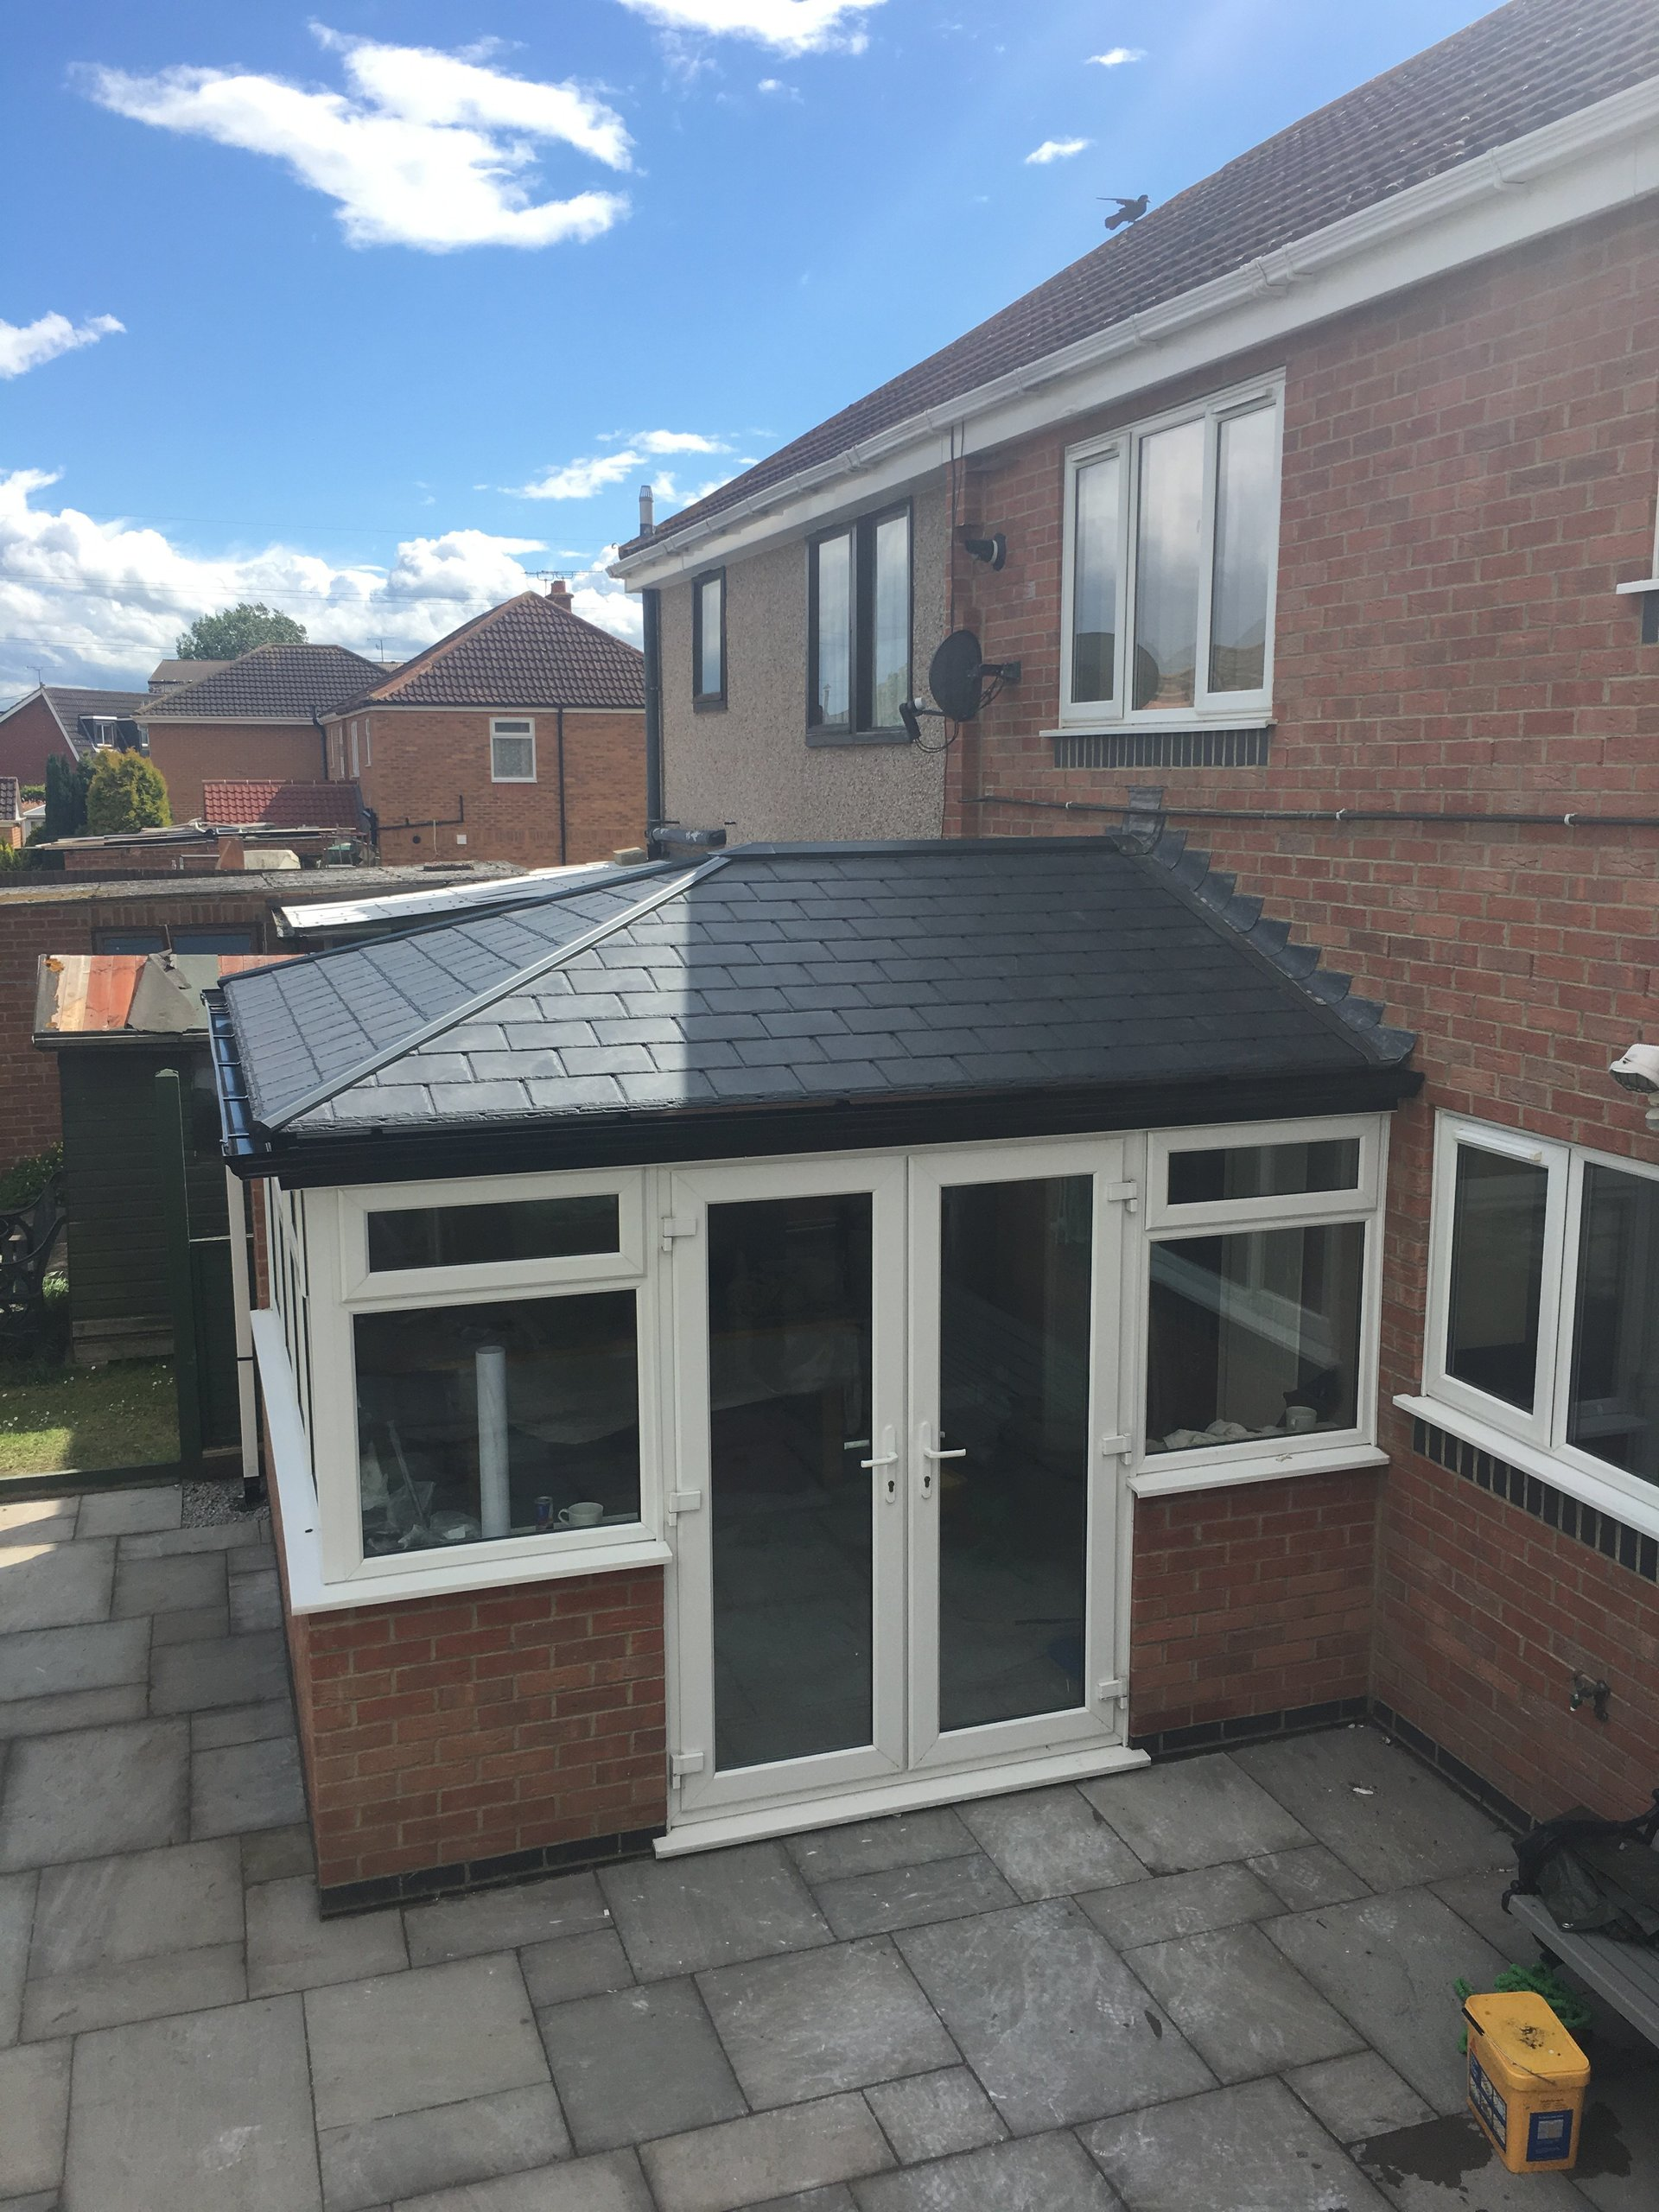 New roof and guttering